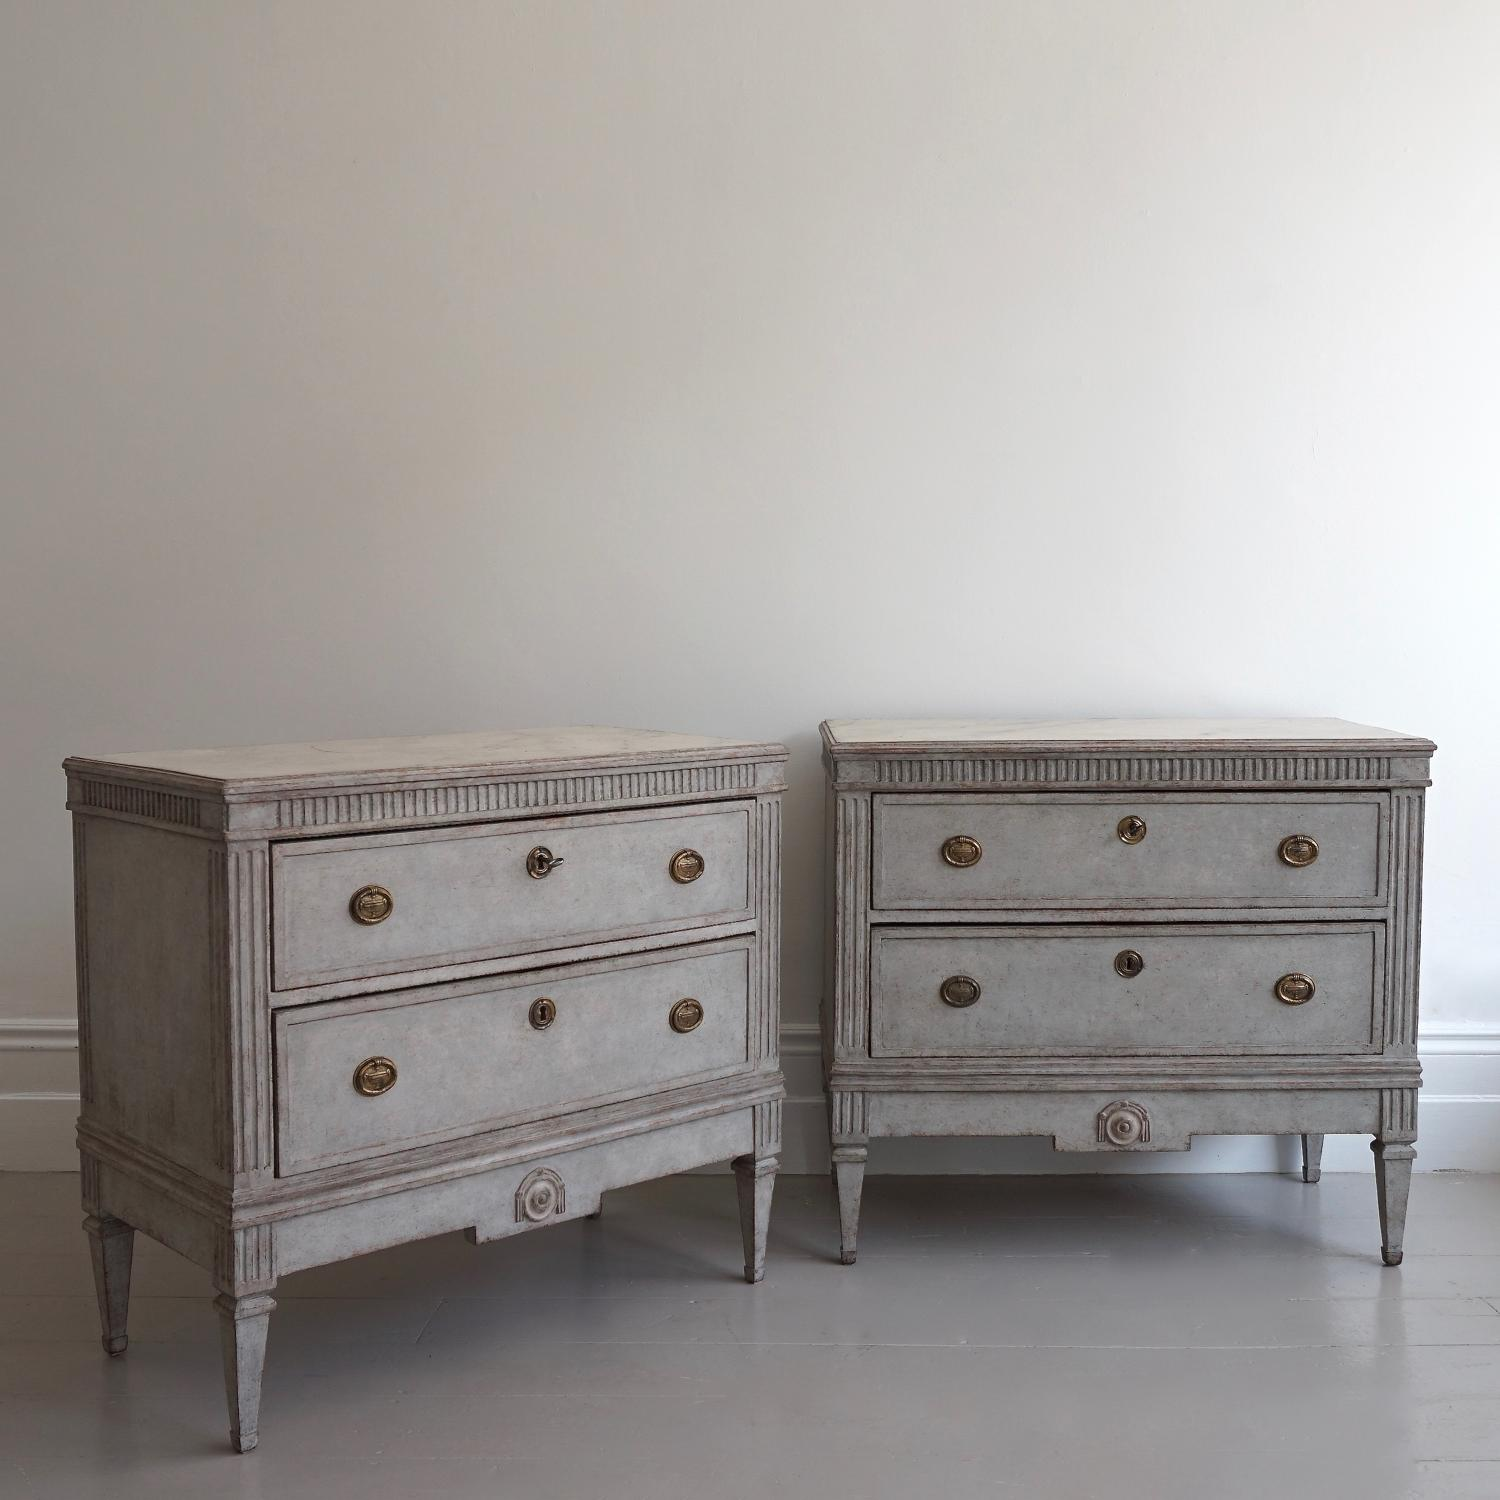 VERY FINE PAIR OF SWEDISH GUSTAVIAN STYLE CHESTS